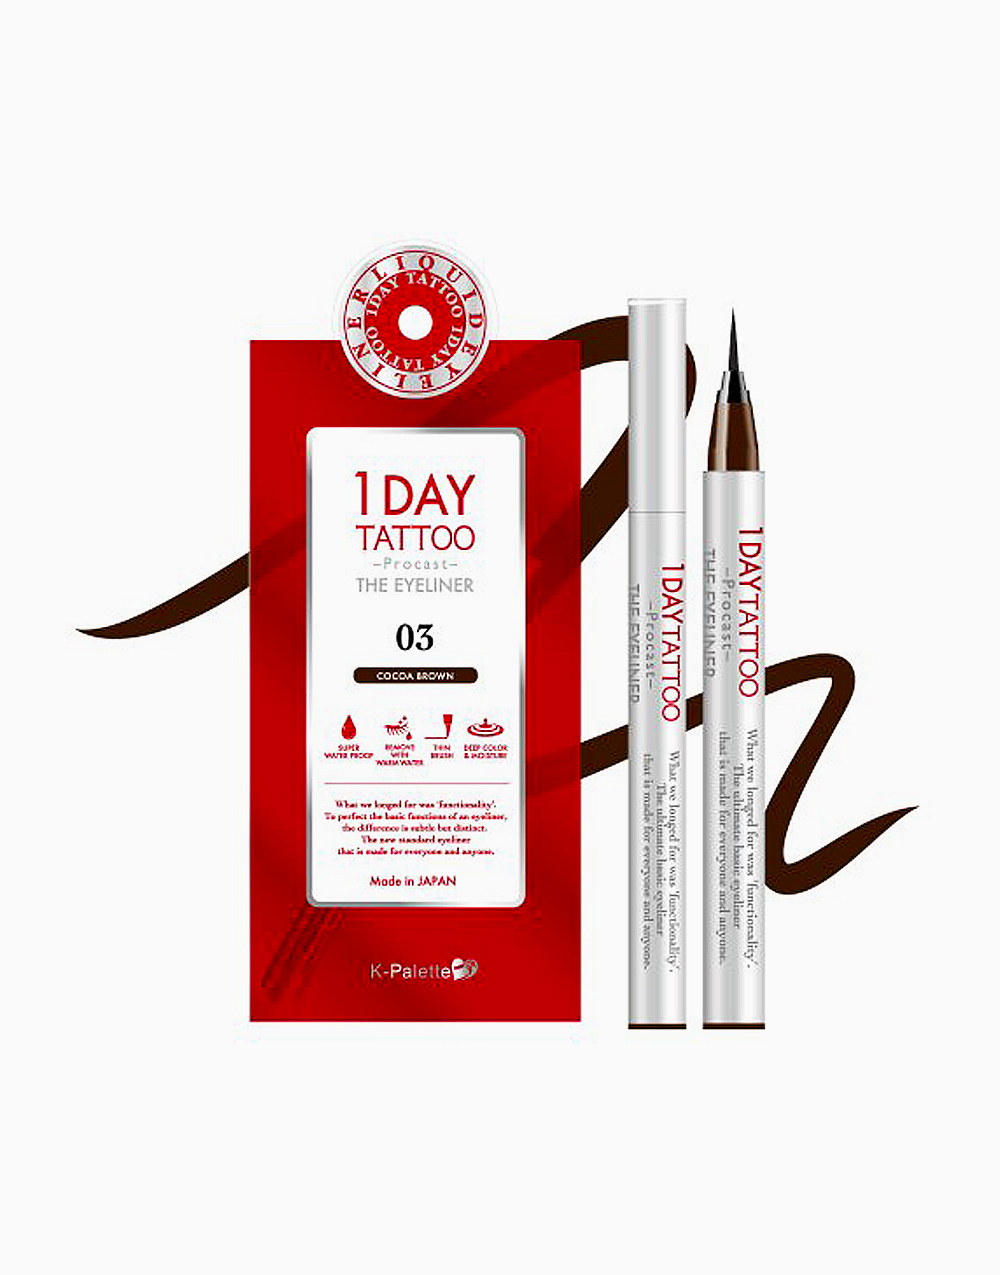 1Day Tattoo Procast the Eyeliner by K-Palette | Cocoa Brown 03